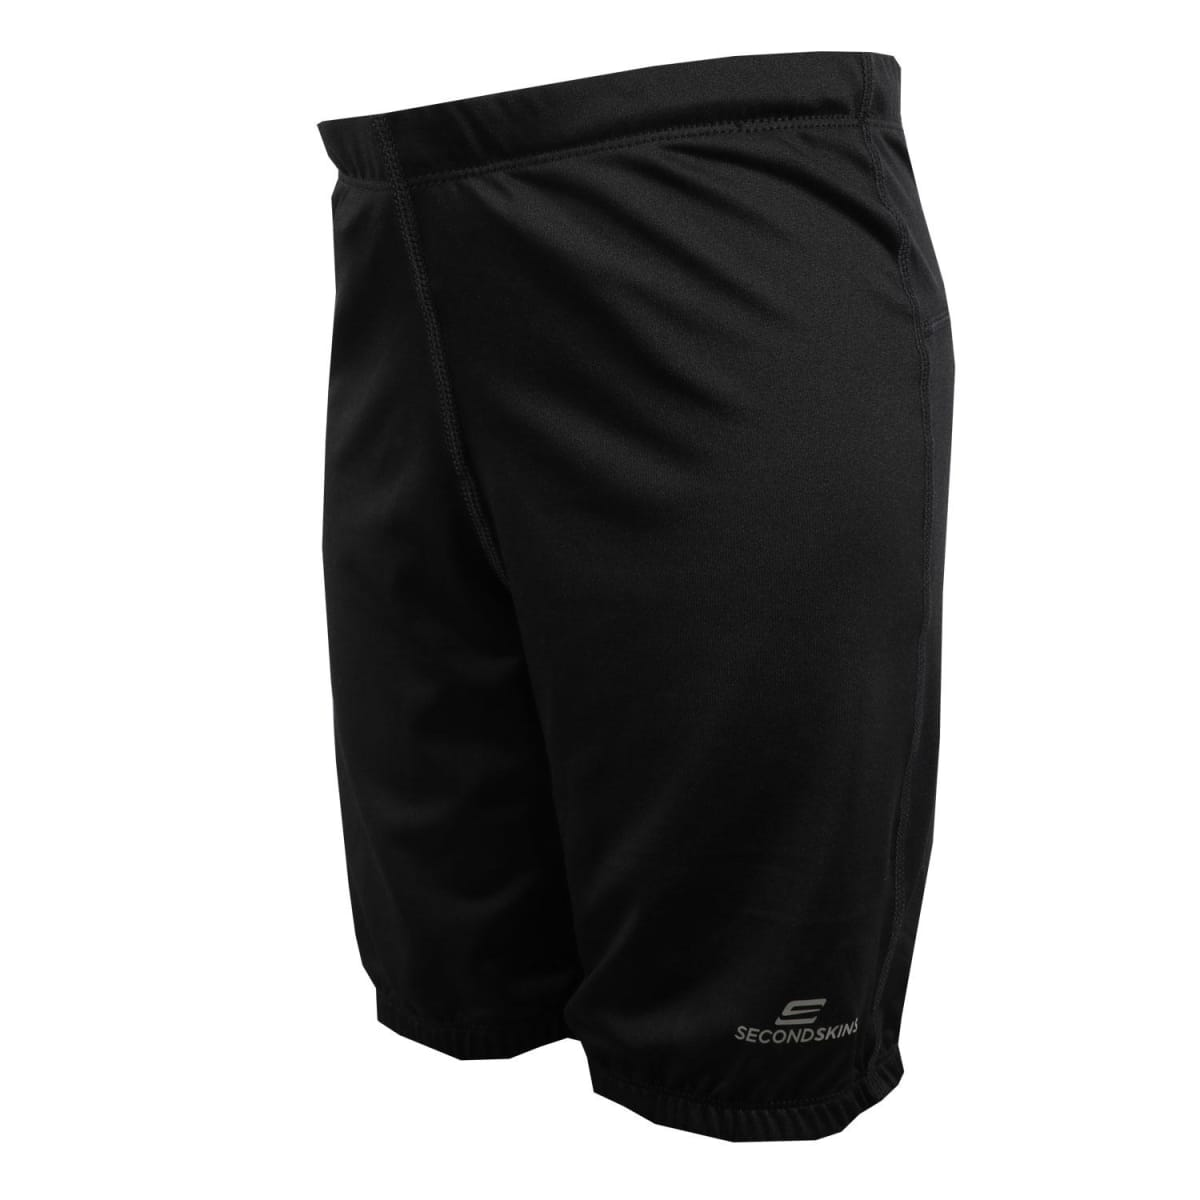 464c2fa13d1f4 Product Image. Second Skins Short Tight